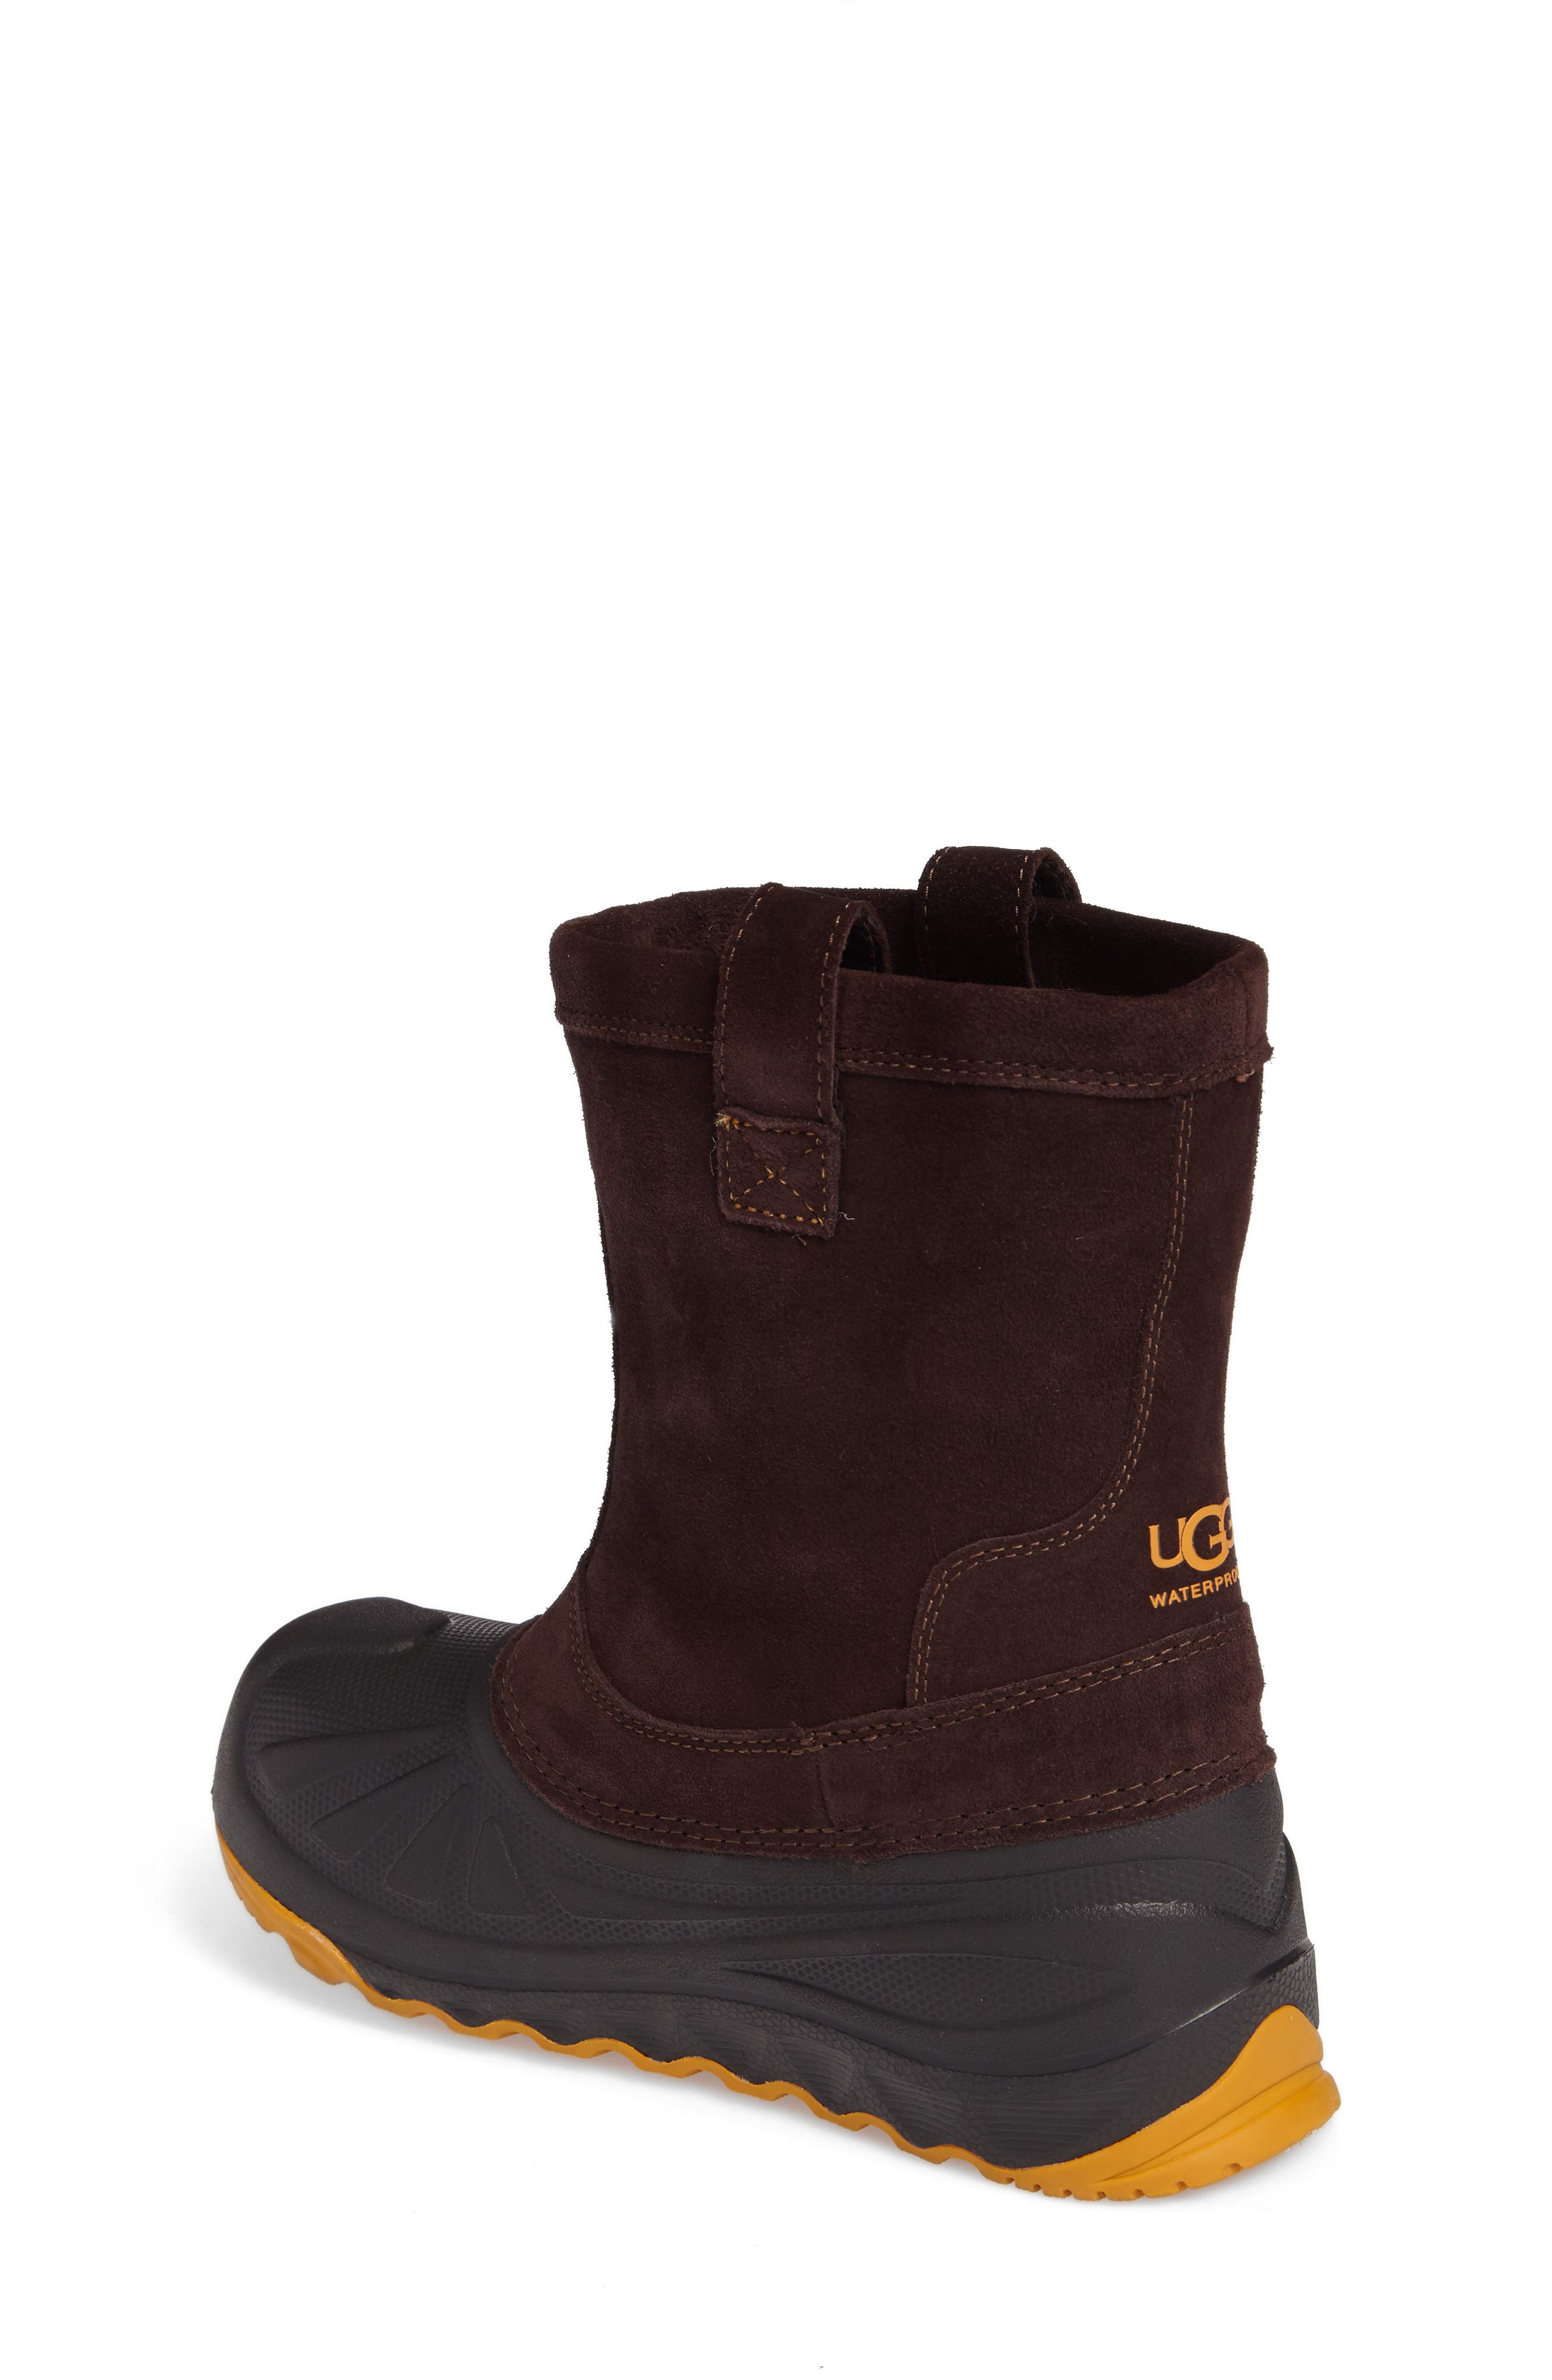 Evertt Waterproof Thinsulate<sup>™</sup> Insulated Snow Boot,                             Alternate thumbnail 3, color,